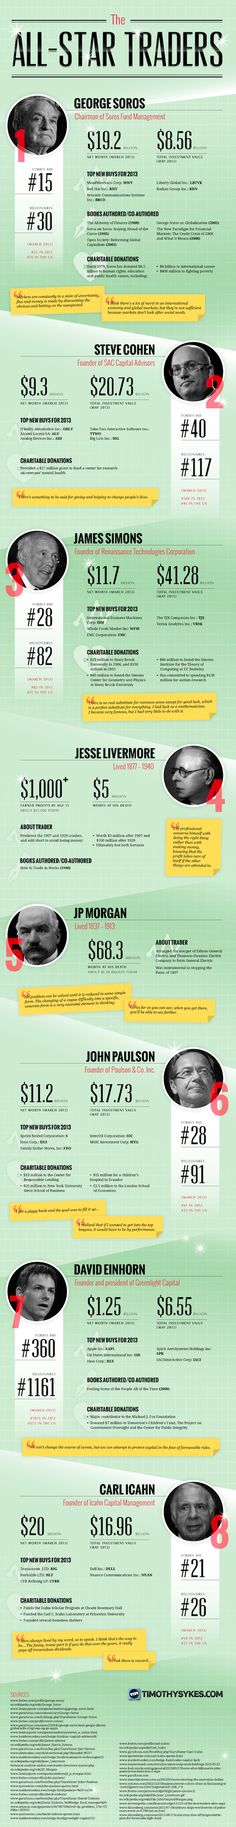 The All-Star Traders [INFOGRAPHIC] http://top-forex-site-reviews.com/?id=4136885